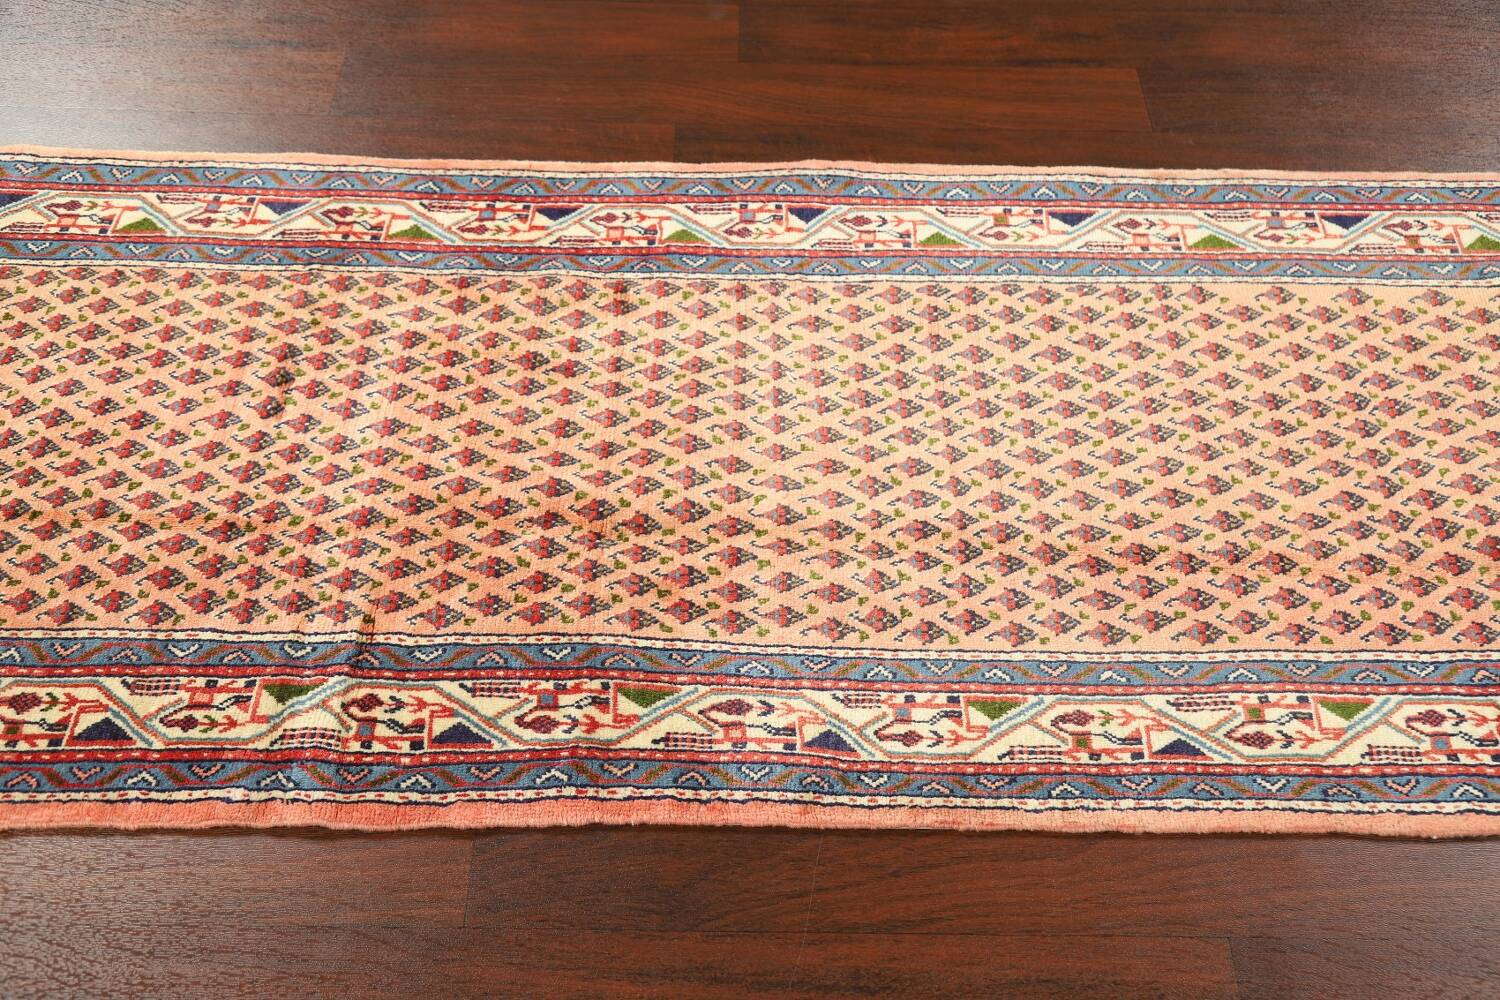 All-Over Peach Botemir Persian Runner Rug 3x14 image 12